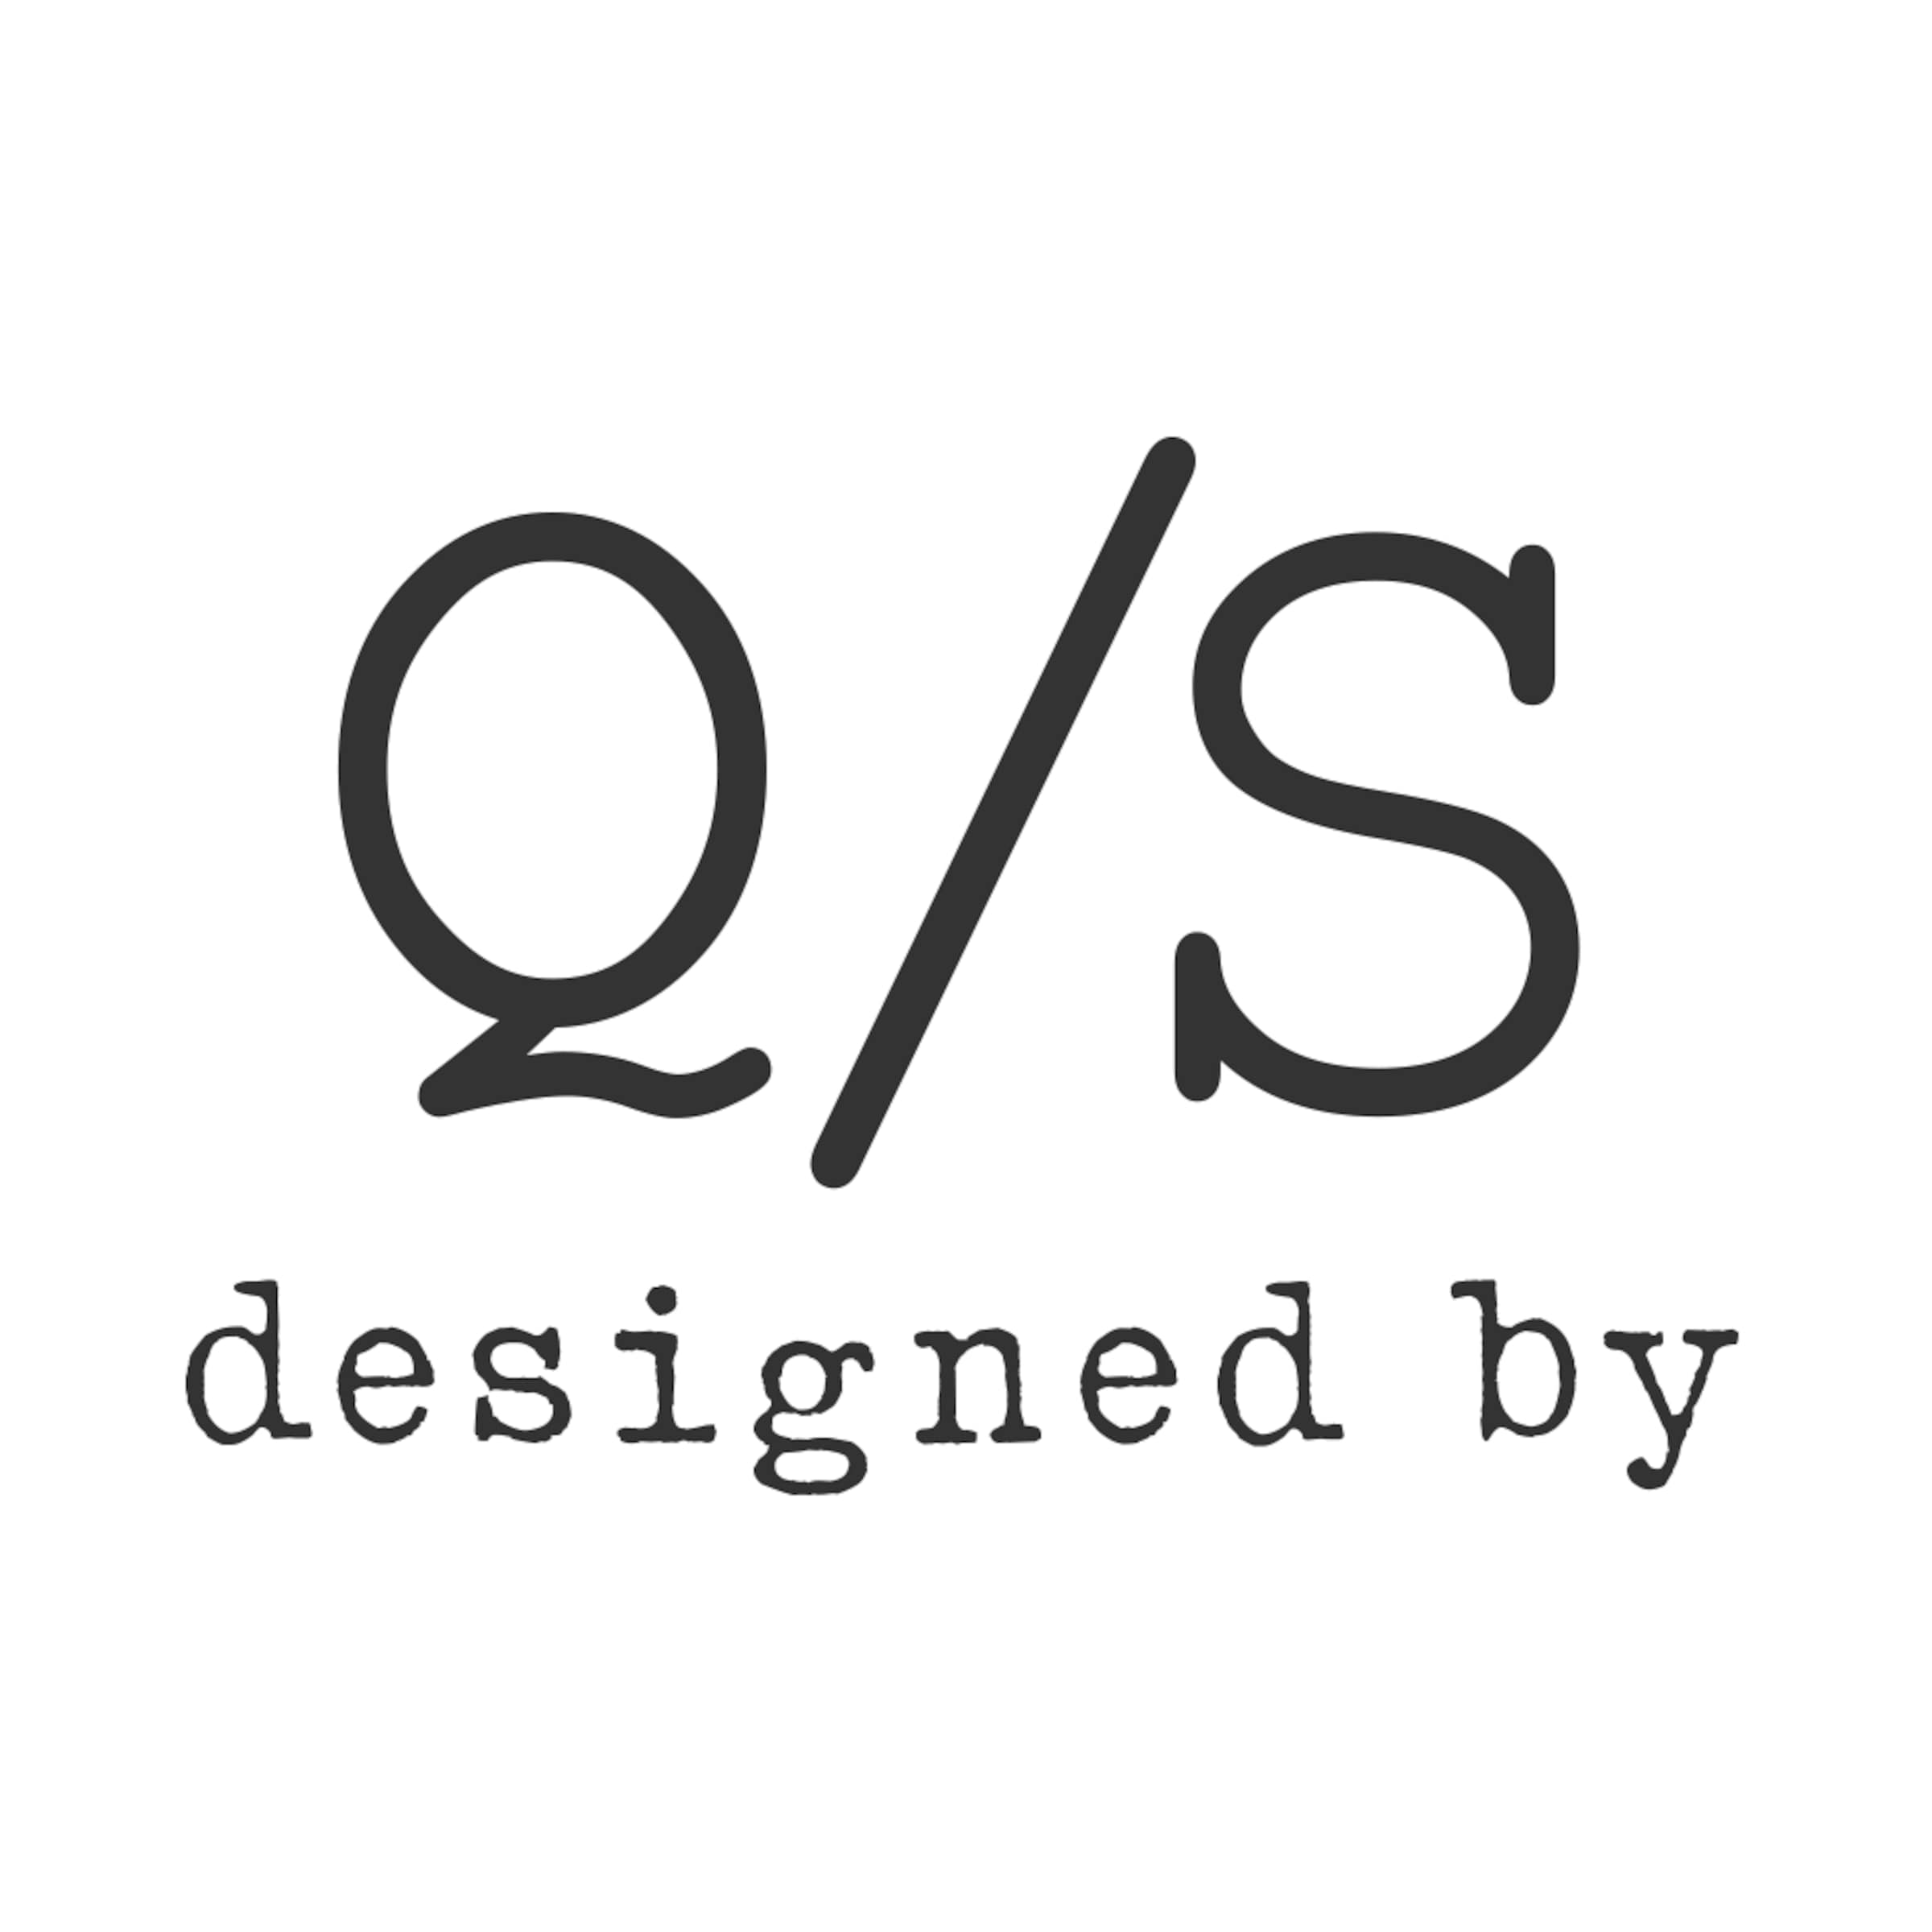 Q/S designed by